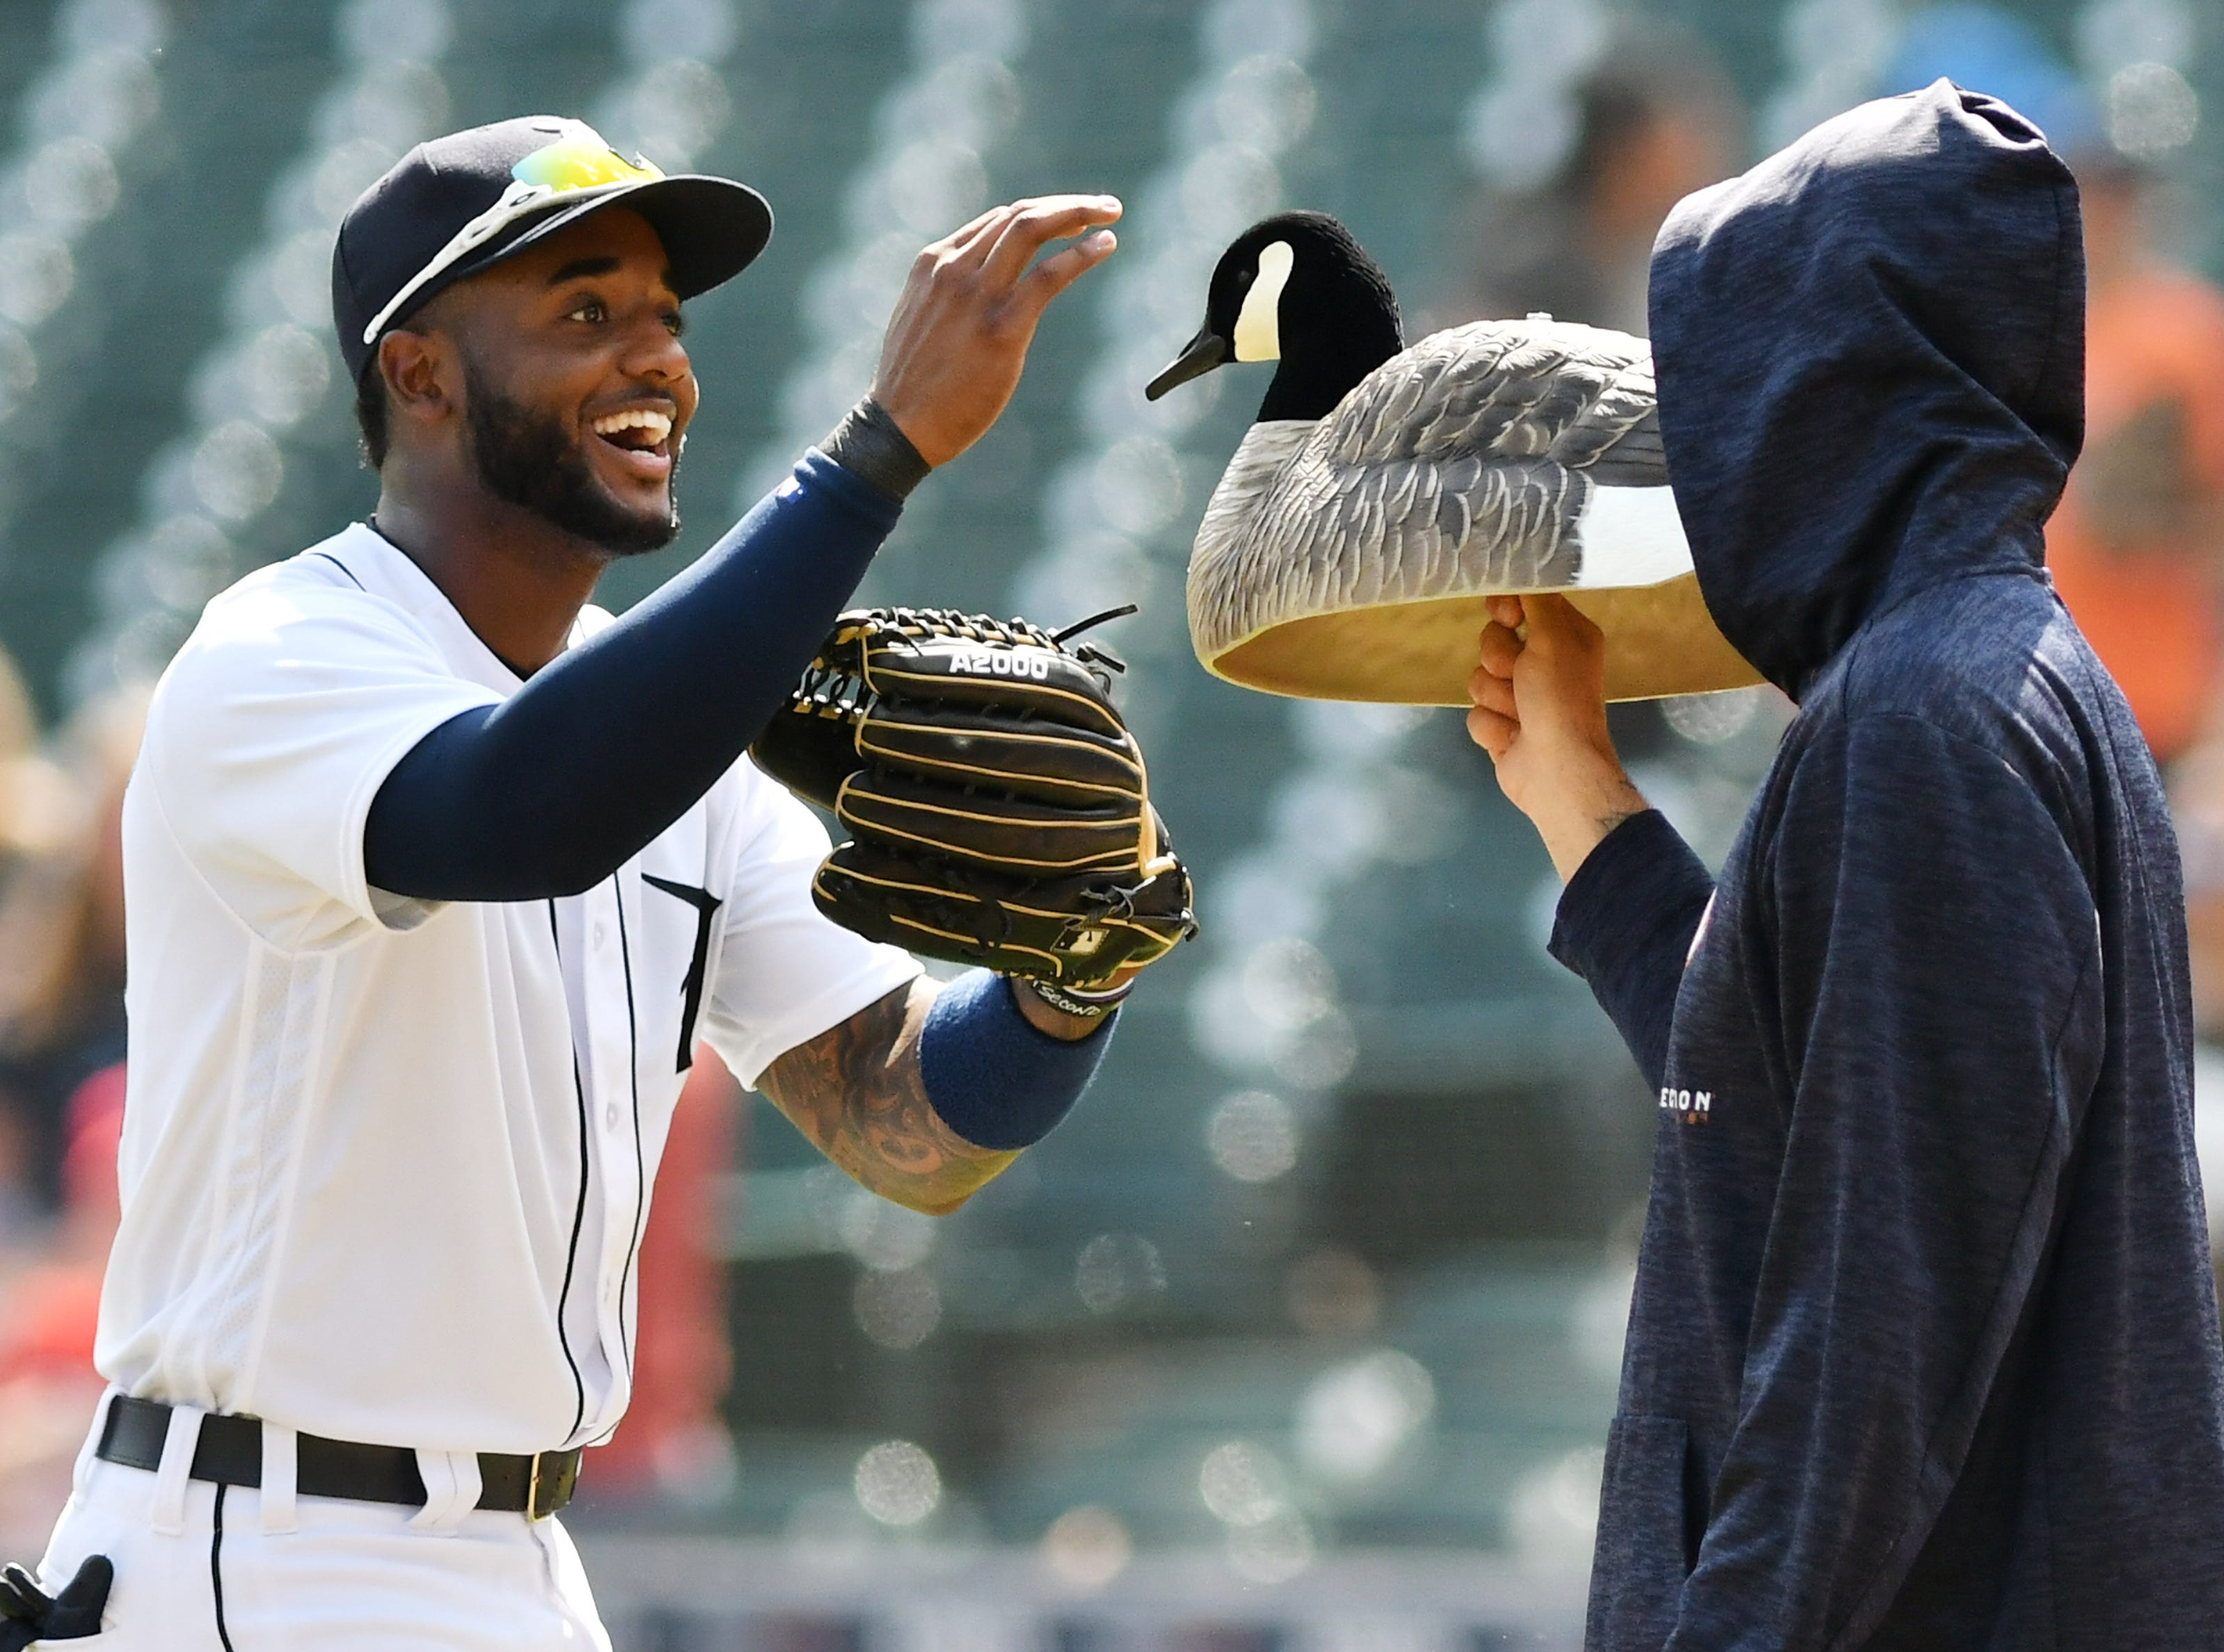 Tigers' Niko Goodrum greets the goose decoy held by Mike Fiers after the Tigers beat the Los Angeles Angels 6-2 on May 31, 2018. The Tigers won four games in a row using the goose as a good luck charm after a live one few into the stands during a game the night before. The good luck didn't last, however, as the Tigers finished the 2018 season with a 64-98 record, 27 games out of first place in the AL Central.